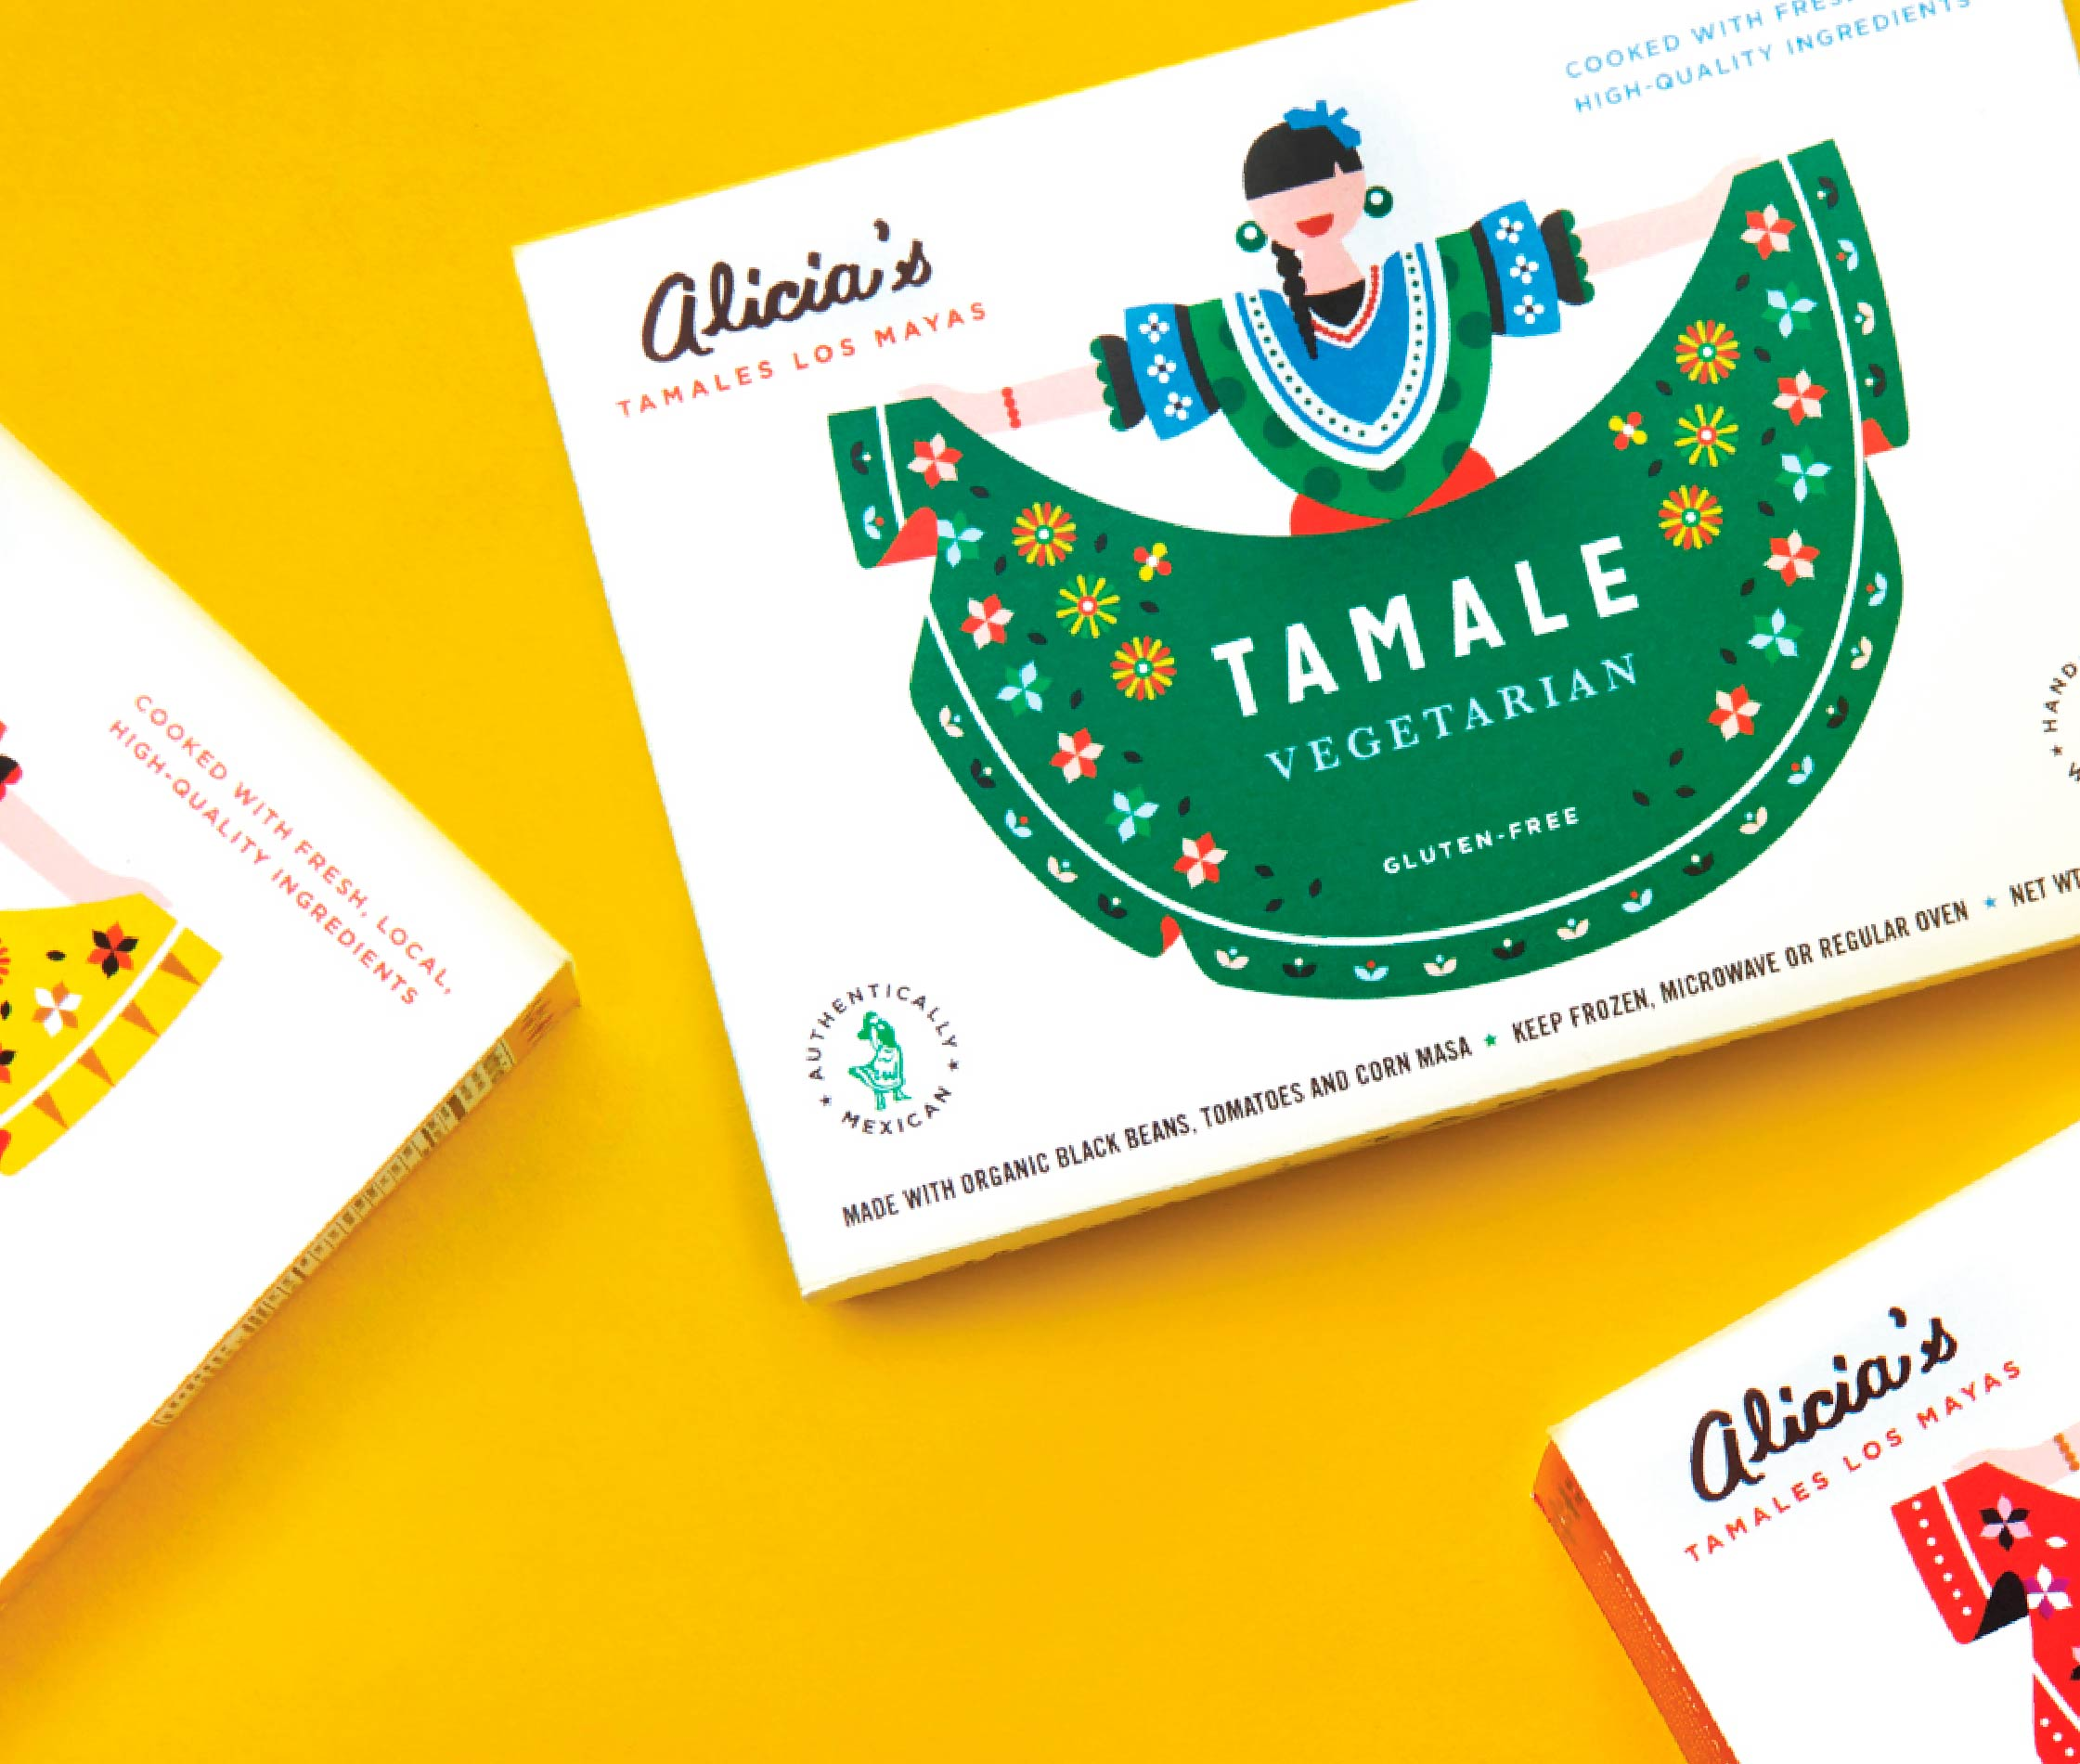 Line up of packaging for Alicia's Tamales Los Mayas packaging by Olio studio